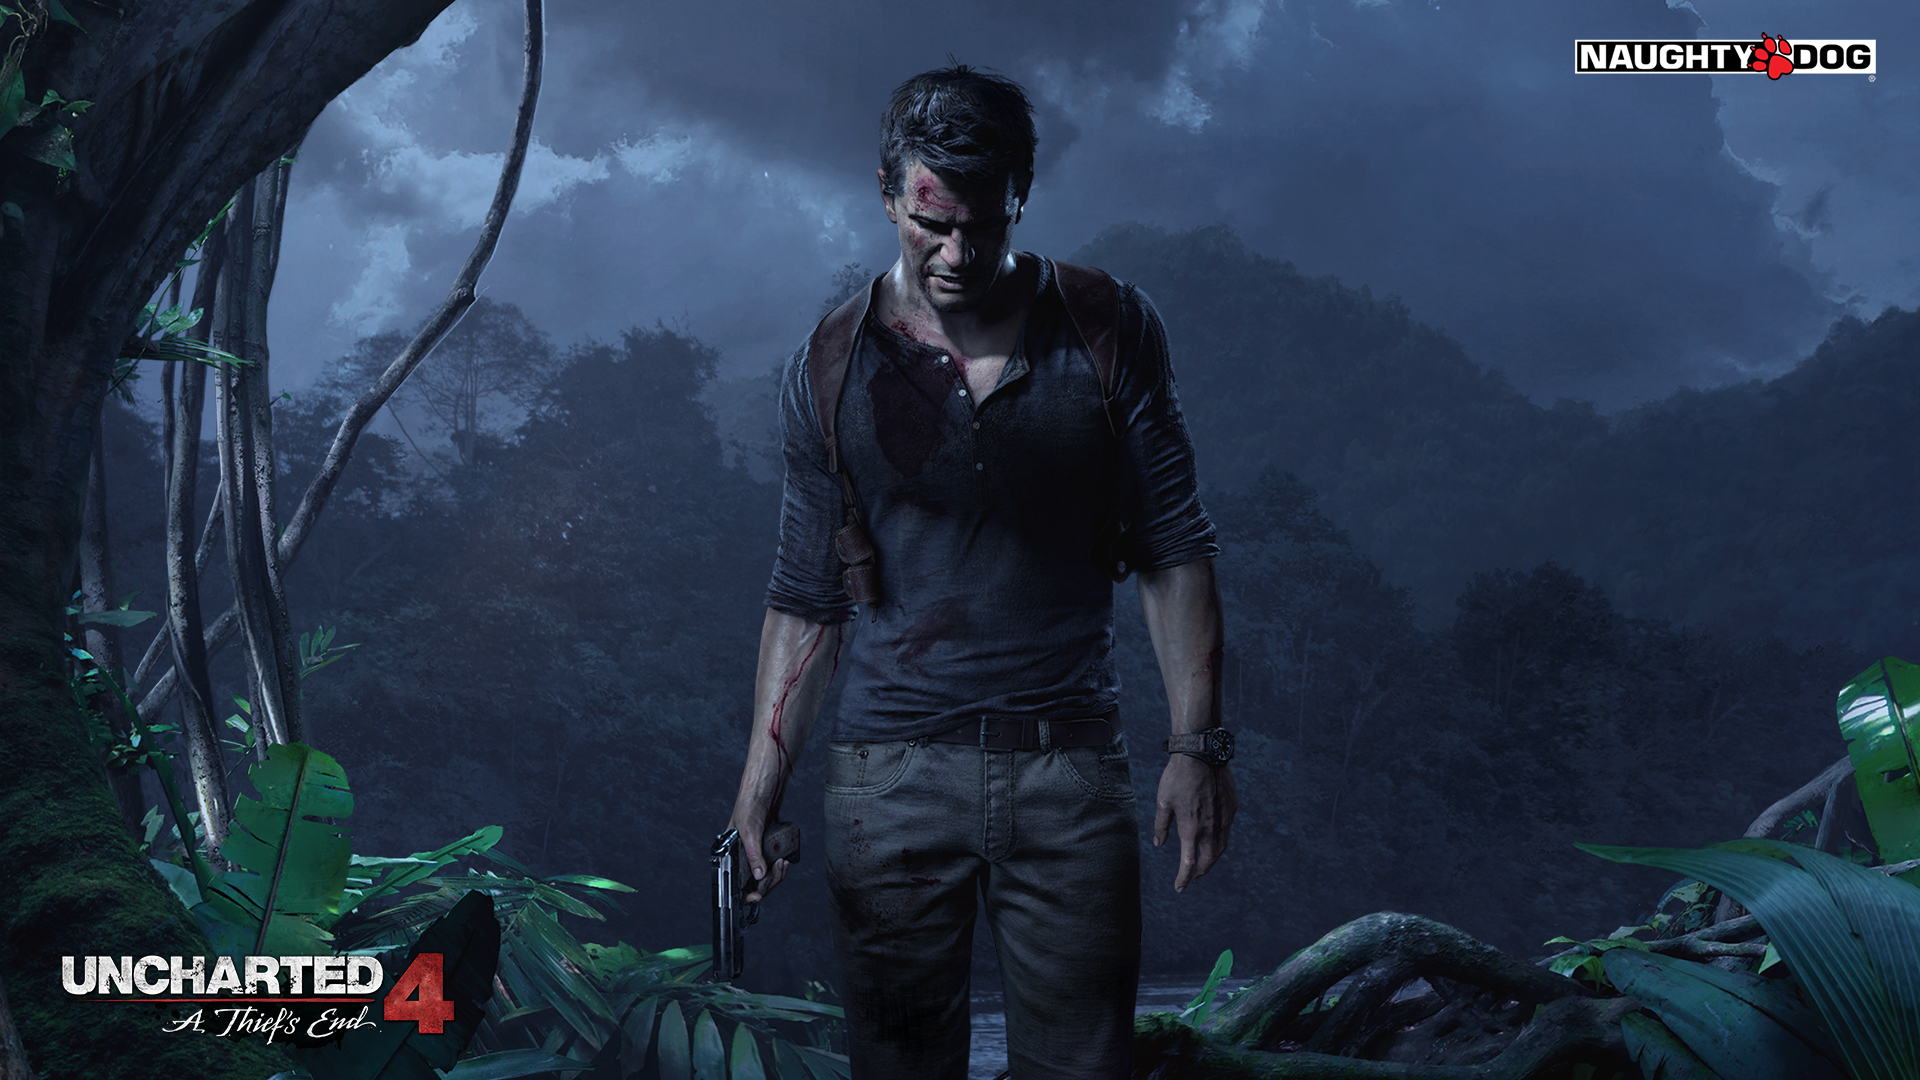 Uncharted 3 release date in Melbourne